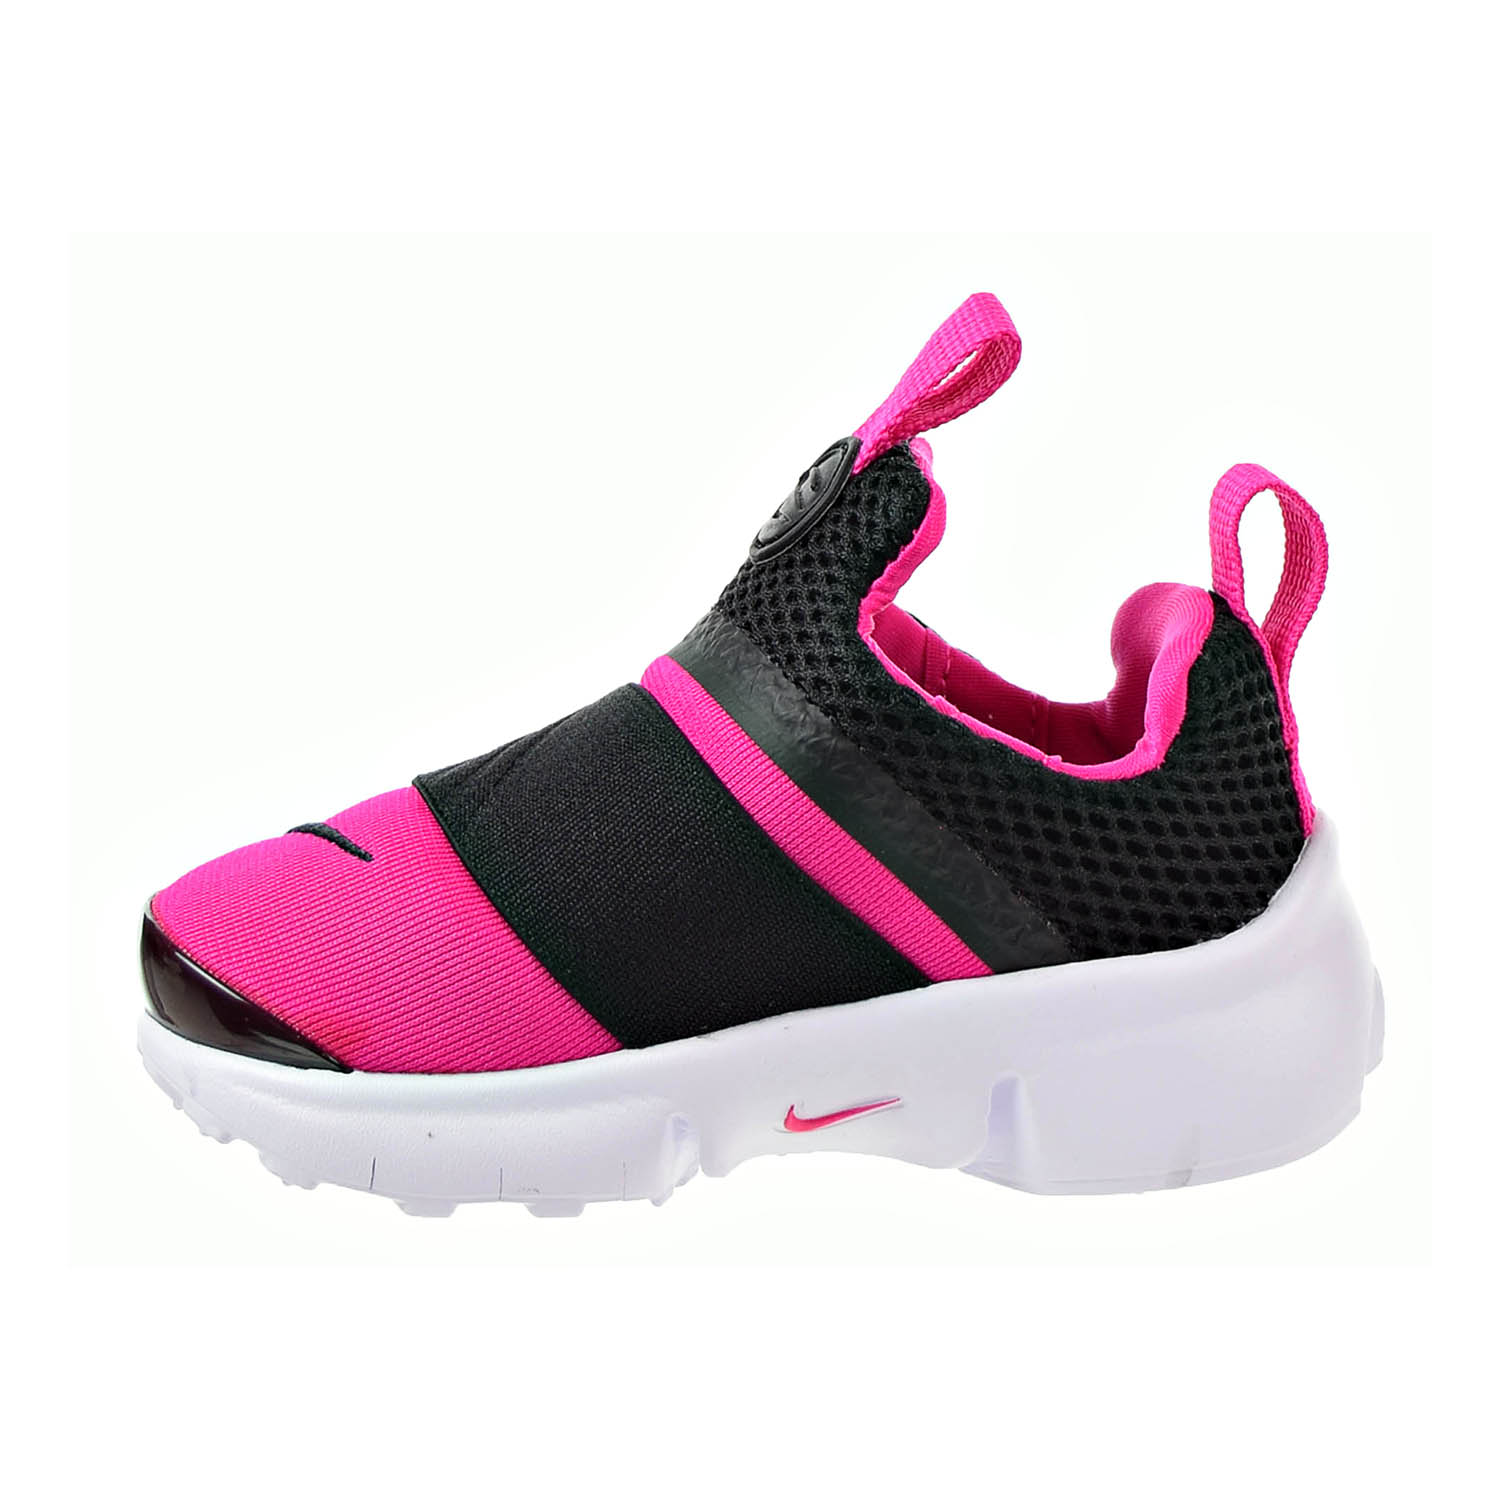 Nike Presto Extreme Toddlers' Shoes Black/Black Pink/Prime White 870021-004